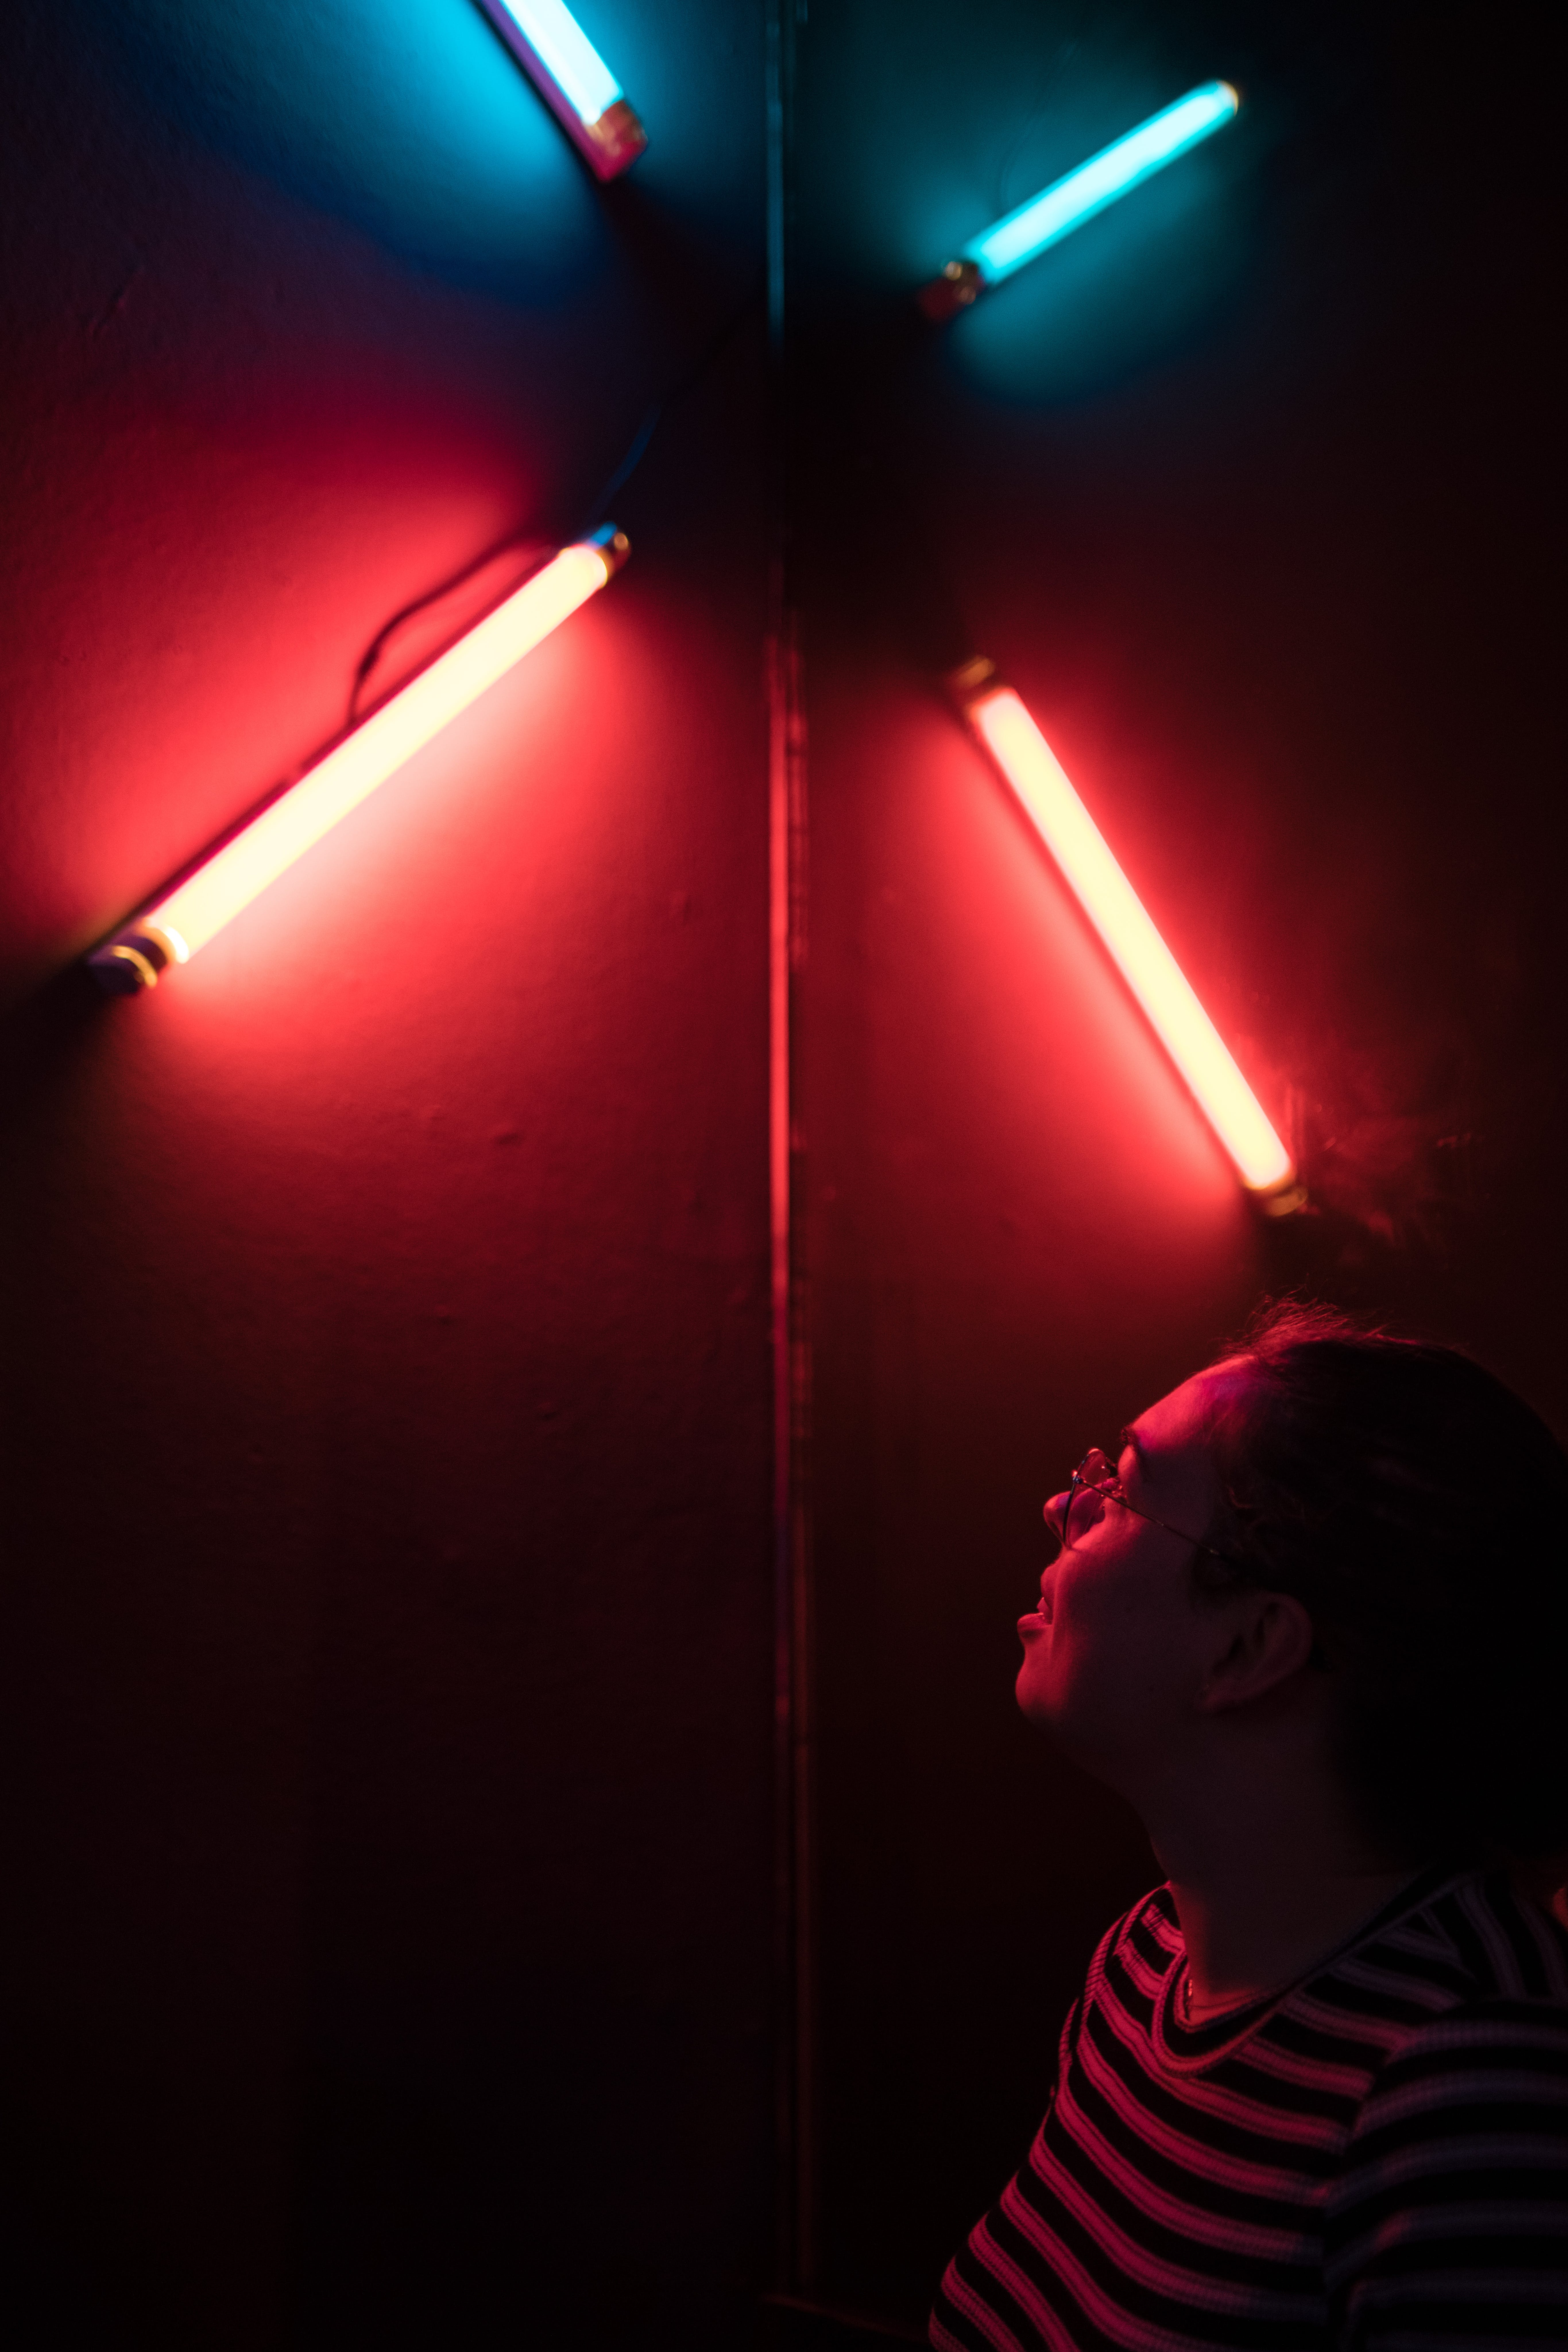 Man Looking Beside Four Red and Blue Led Lamps